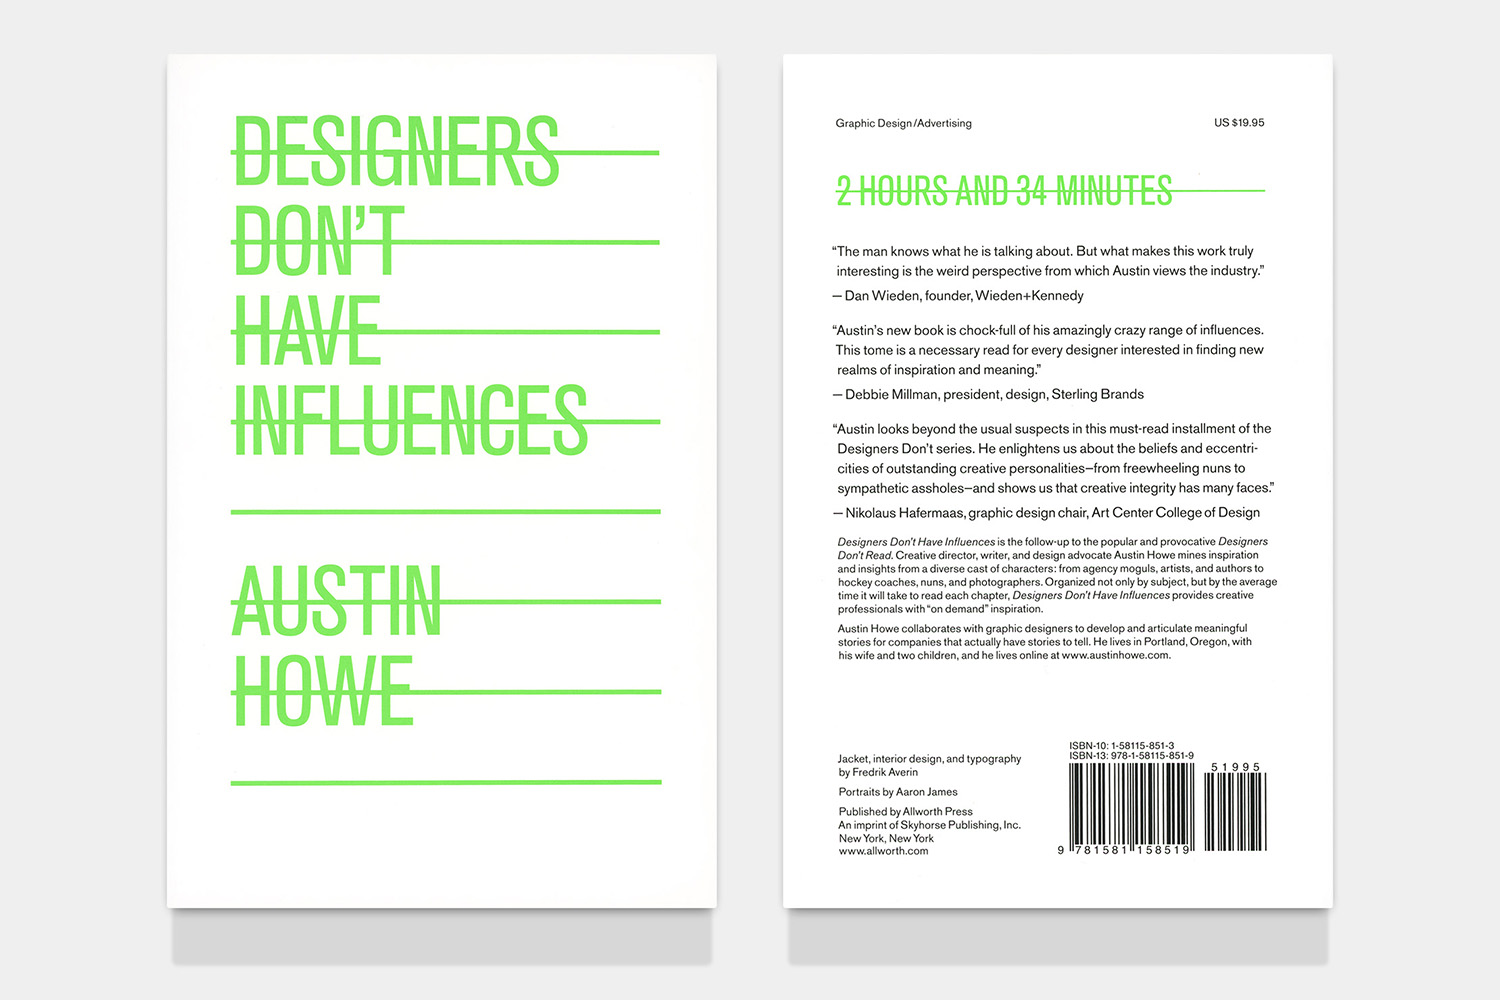 designers-dont-have-influences-austin-howe-aaron-james